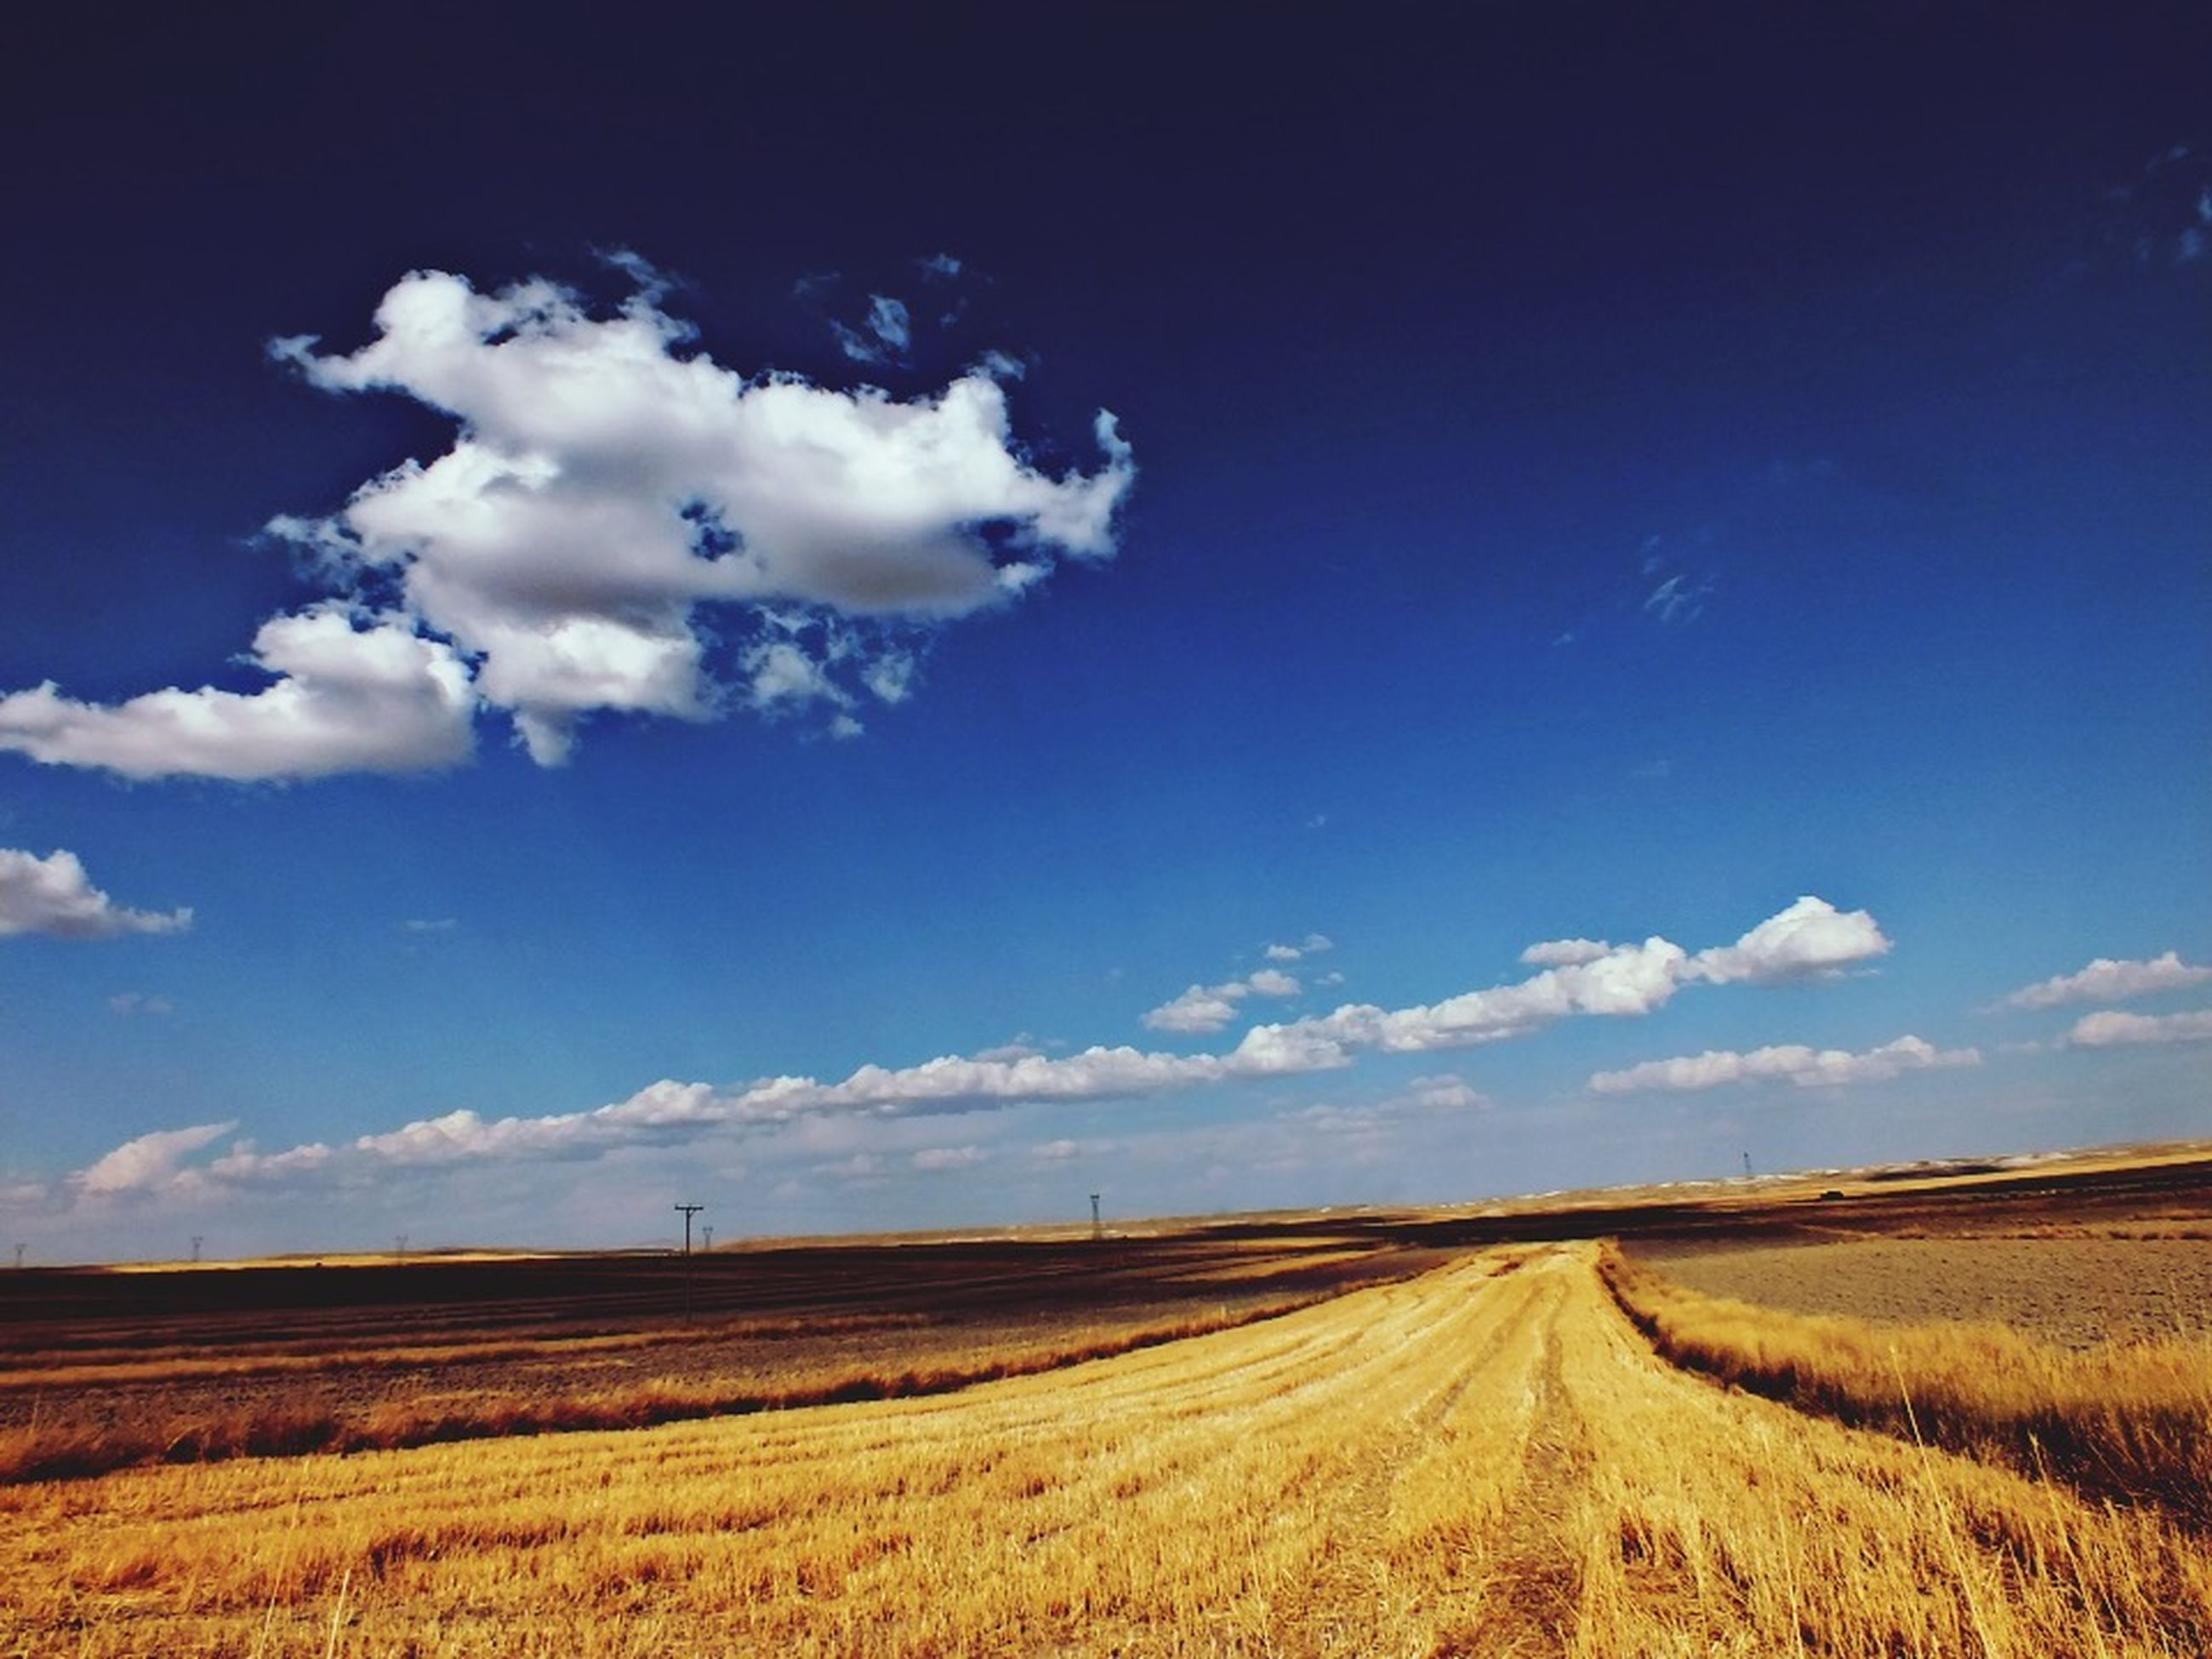 landscape, agriculture, field, rural scene, tranquil scene, sky, farm, tranquility, crop, scenics, horizon over land, nature, beauty in nature, cloud, blue, cloud - sky, cultivated land, growth, harvesting, grass